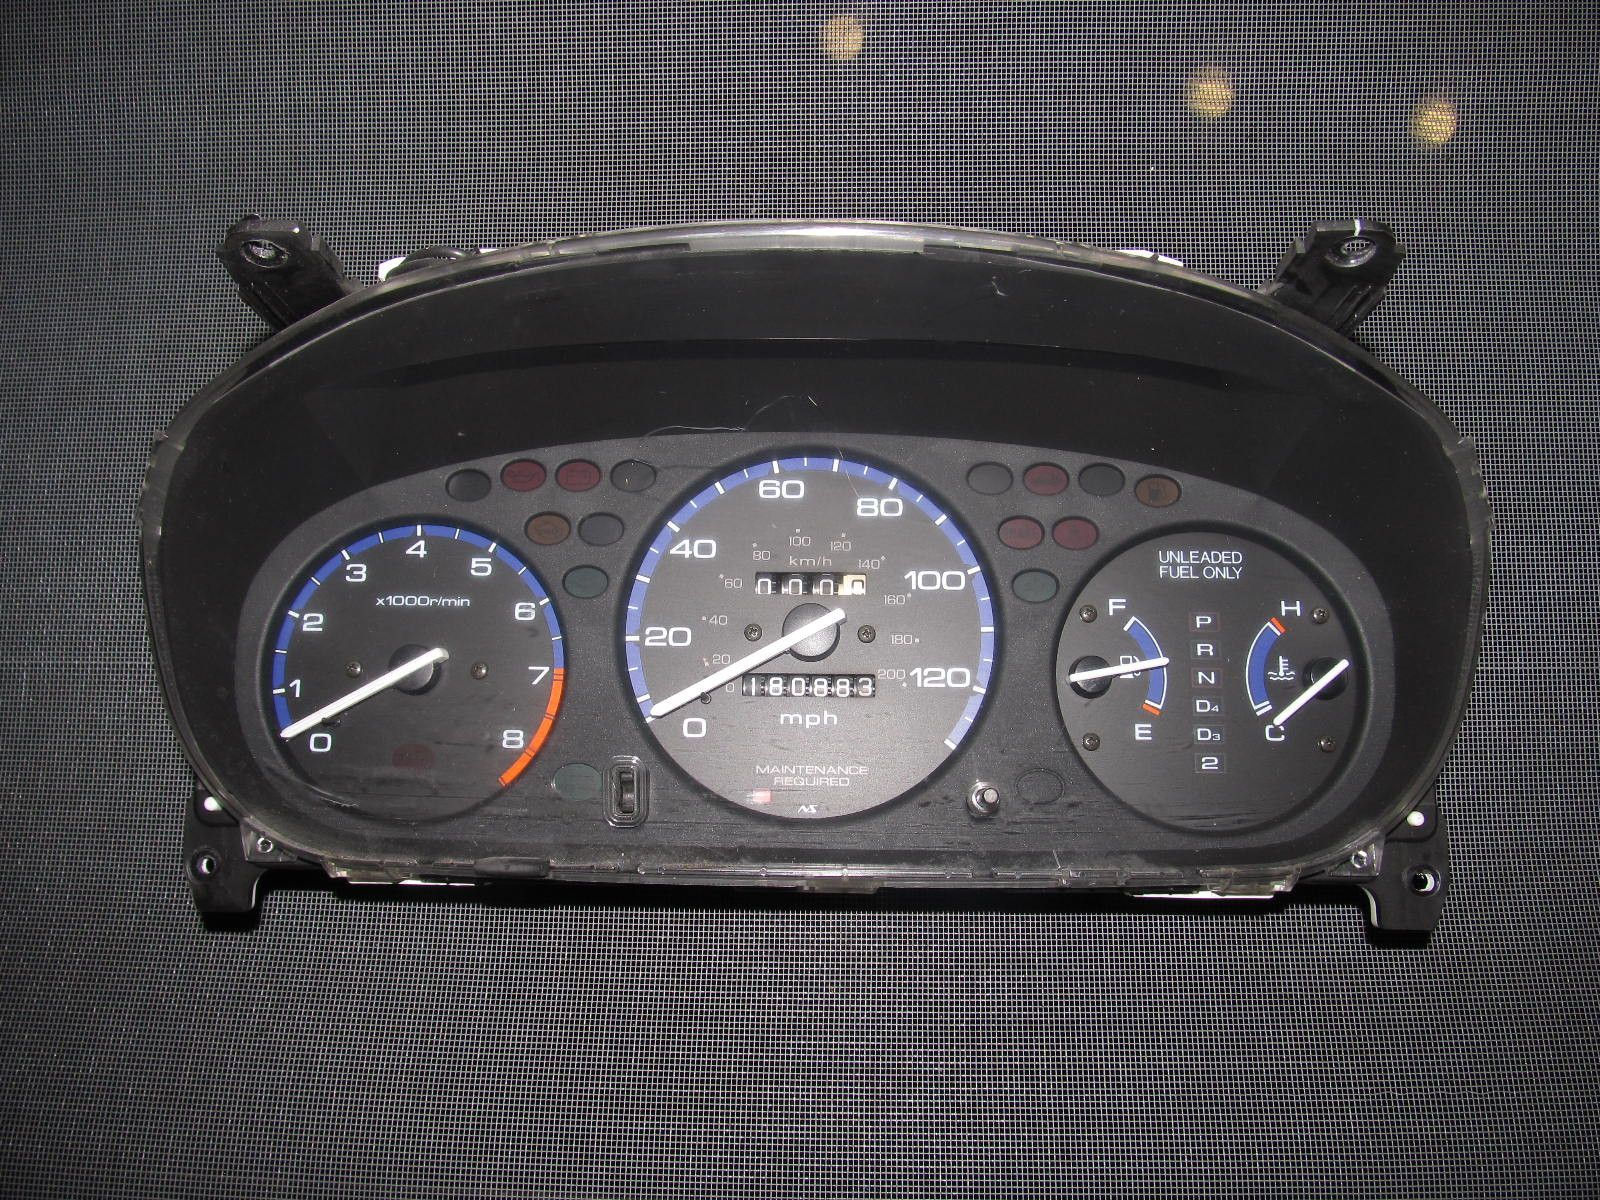 96 97 98 99 00 Honda Civic D16y8 Oem Speedometer Gauge Honda Civic Civic 2000 Honda Civic